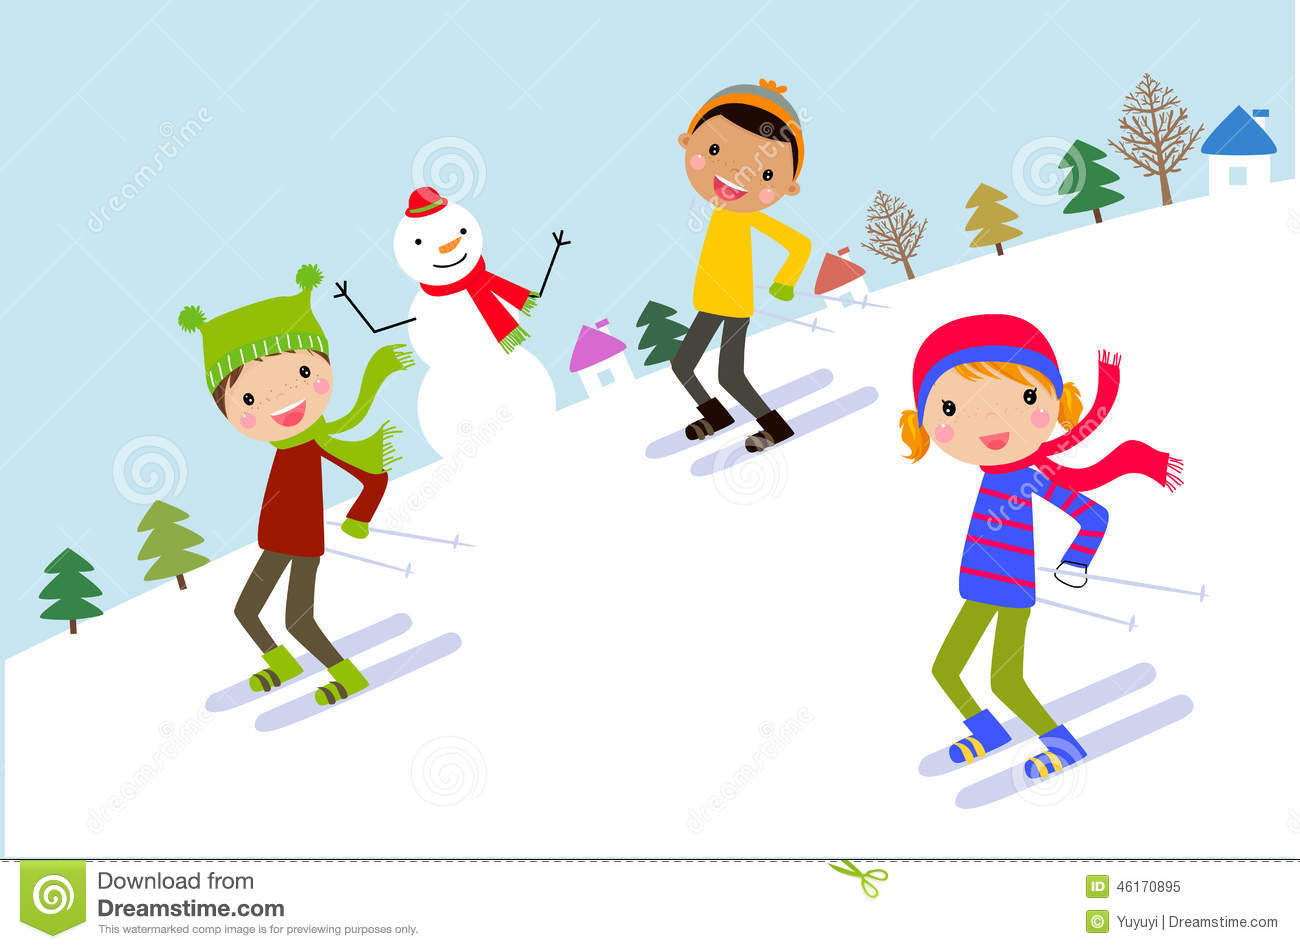 Kids skiing clipart » Clipart Station.